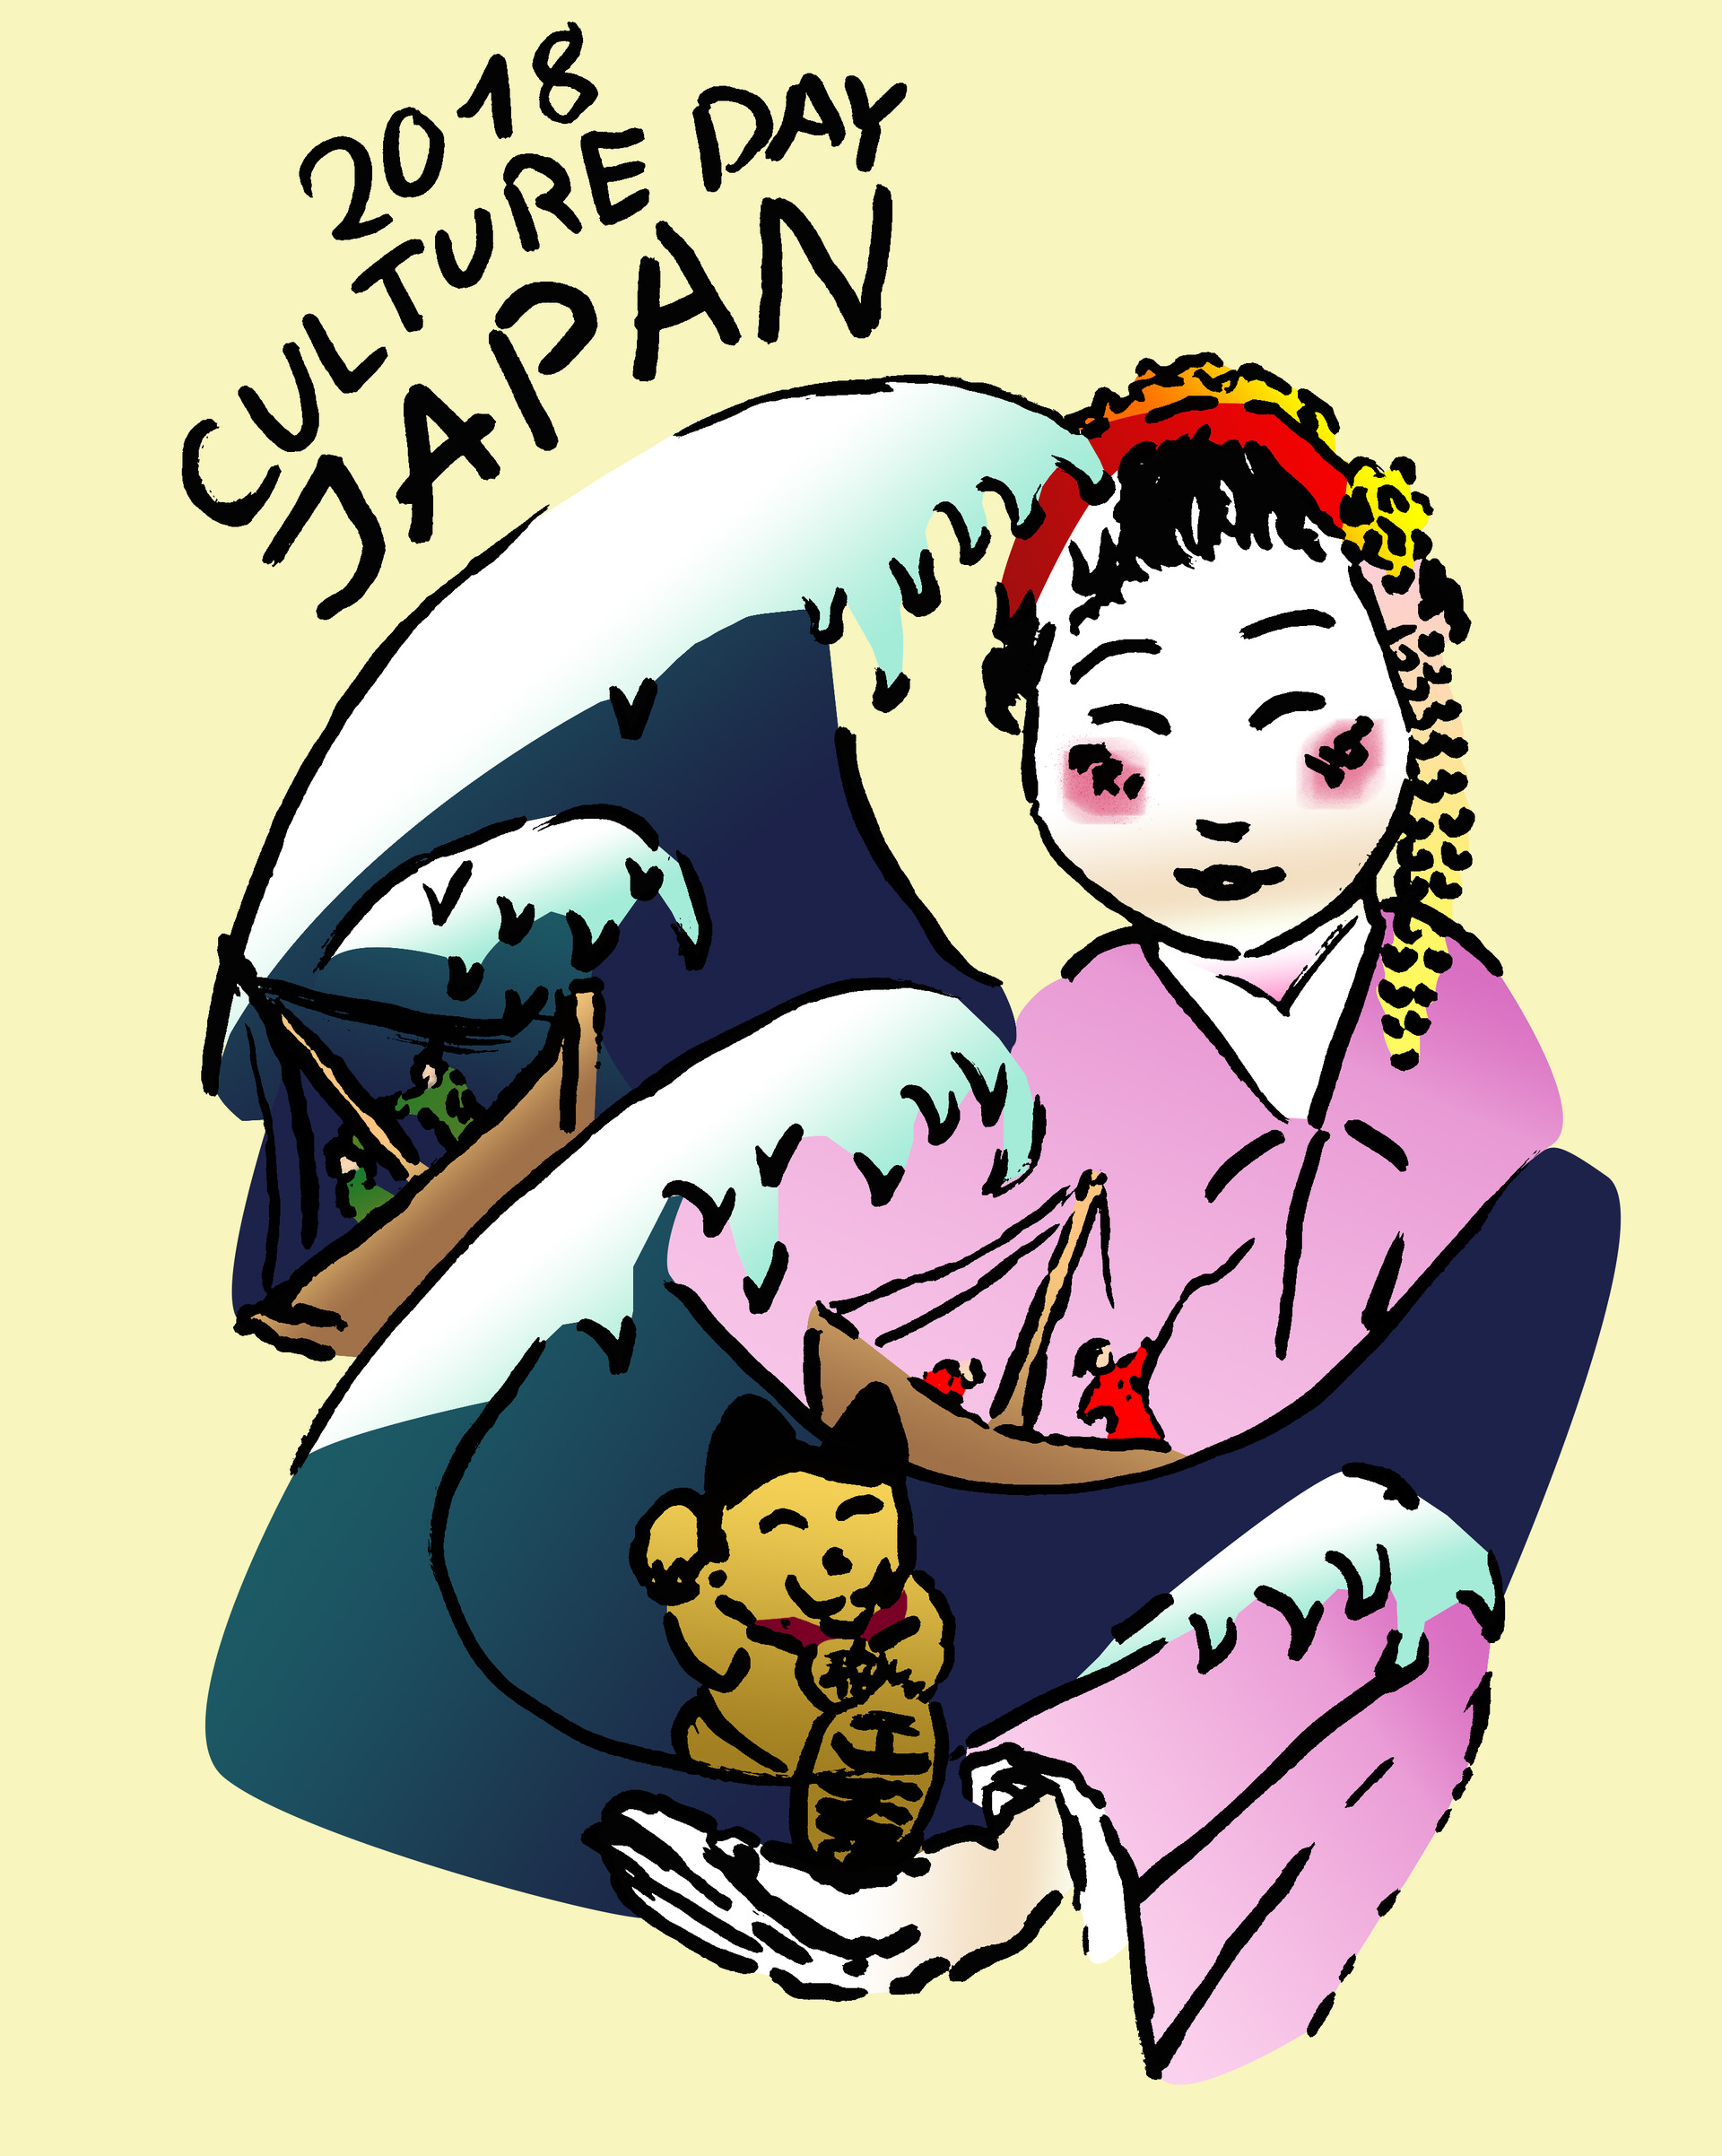 Culture day clipart picture freeuse library ArtStation - Poster artwork for 2018 Culture Day in Japan ... picture freeuse library